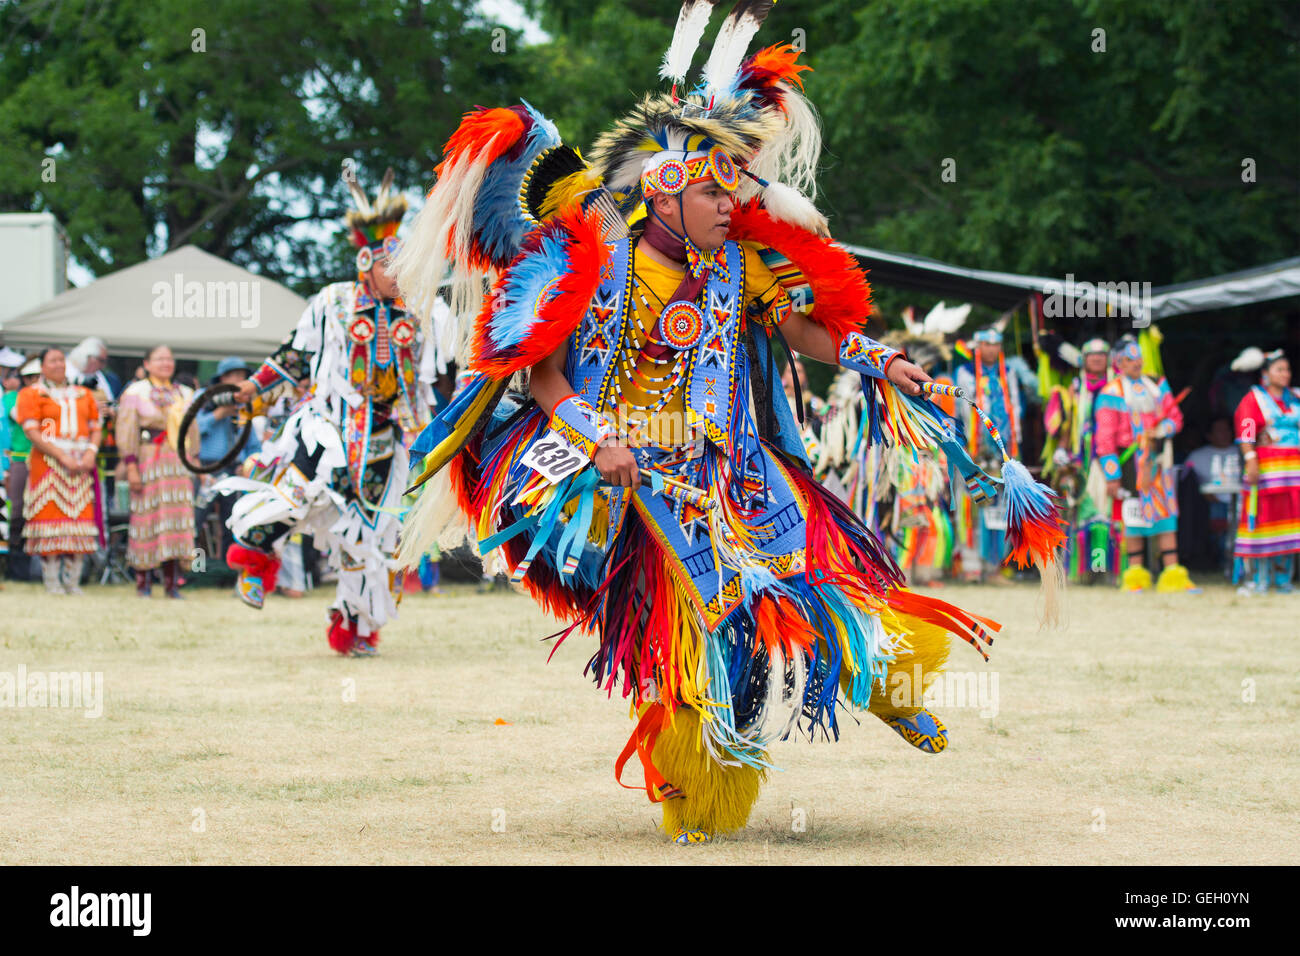 Pow Wow Native Male Dancer in Traditional Regalia Six Nations of the Grand River Champion of Champions Powwow, Ohsweken - Stock Image